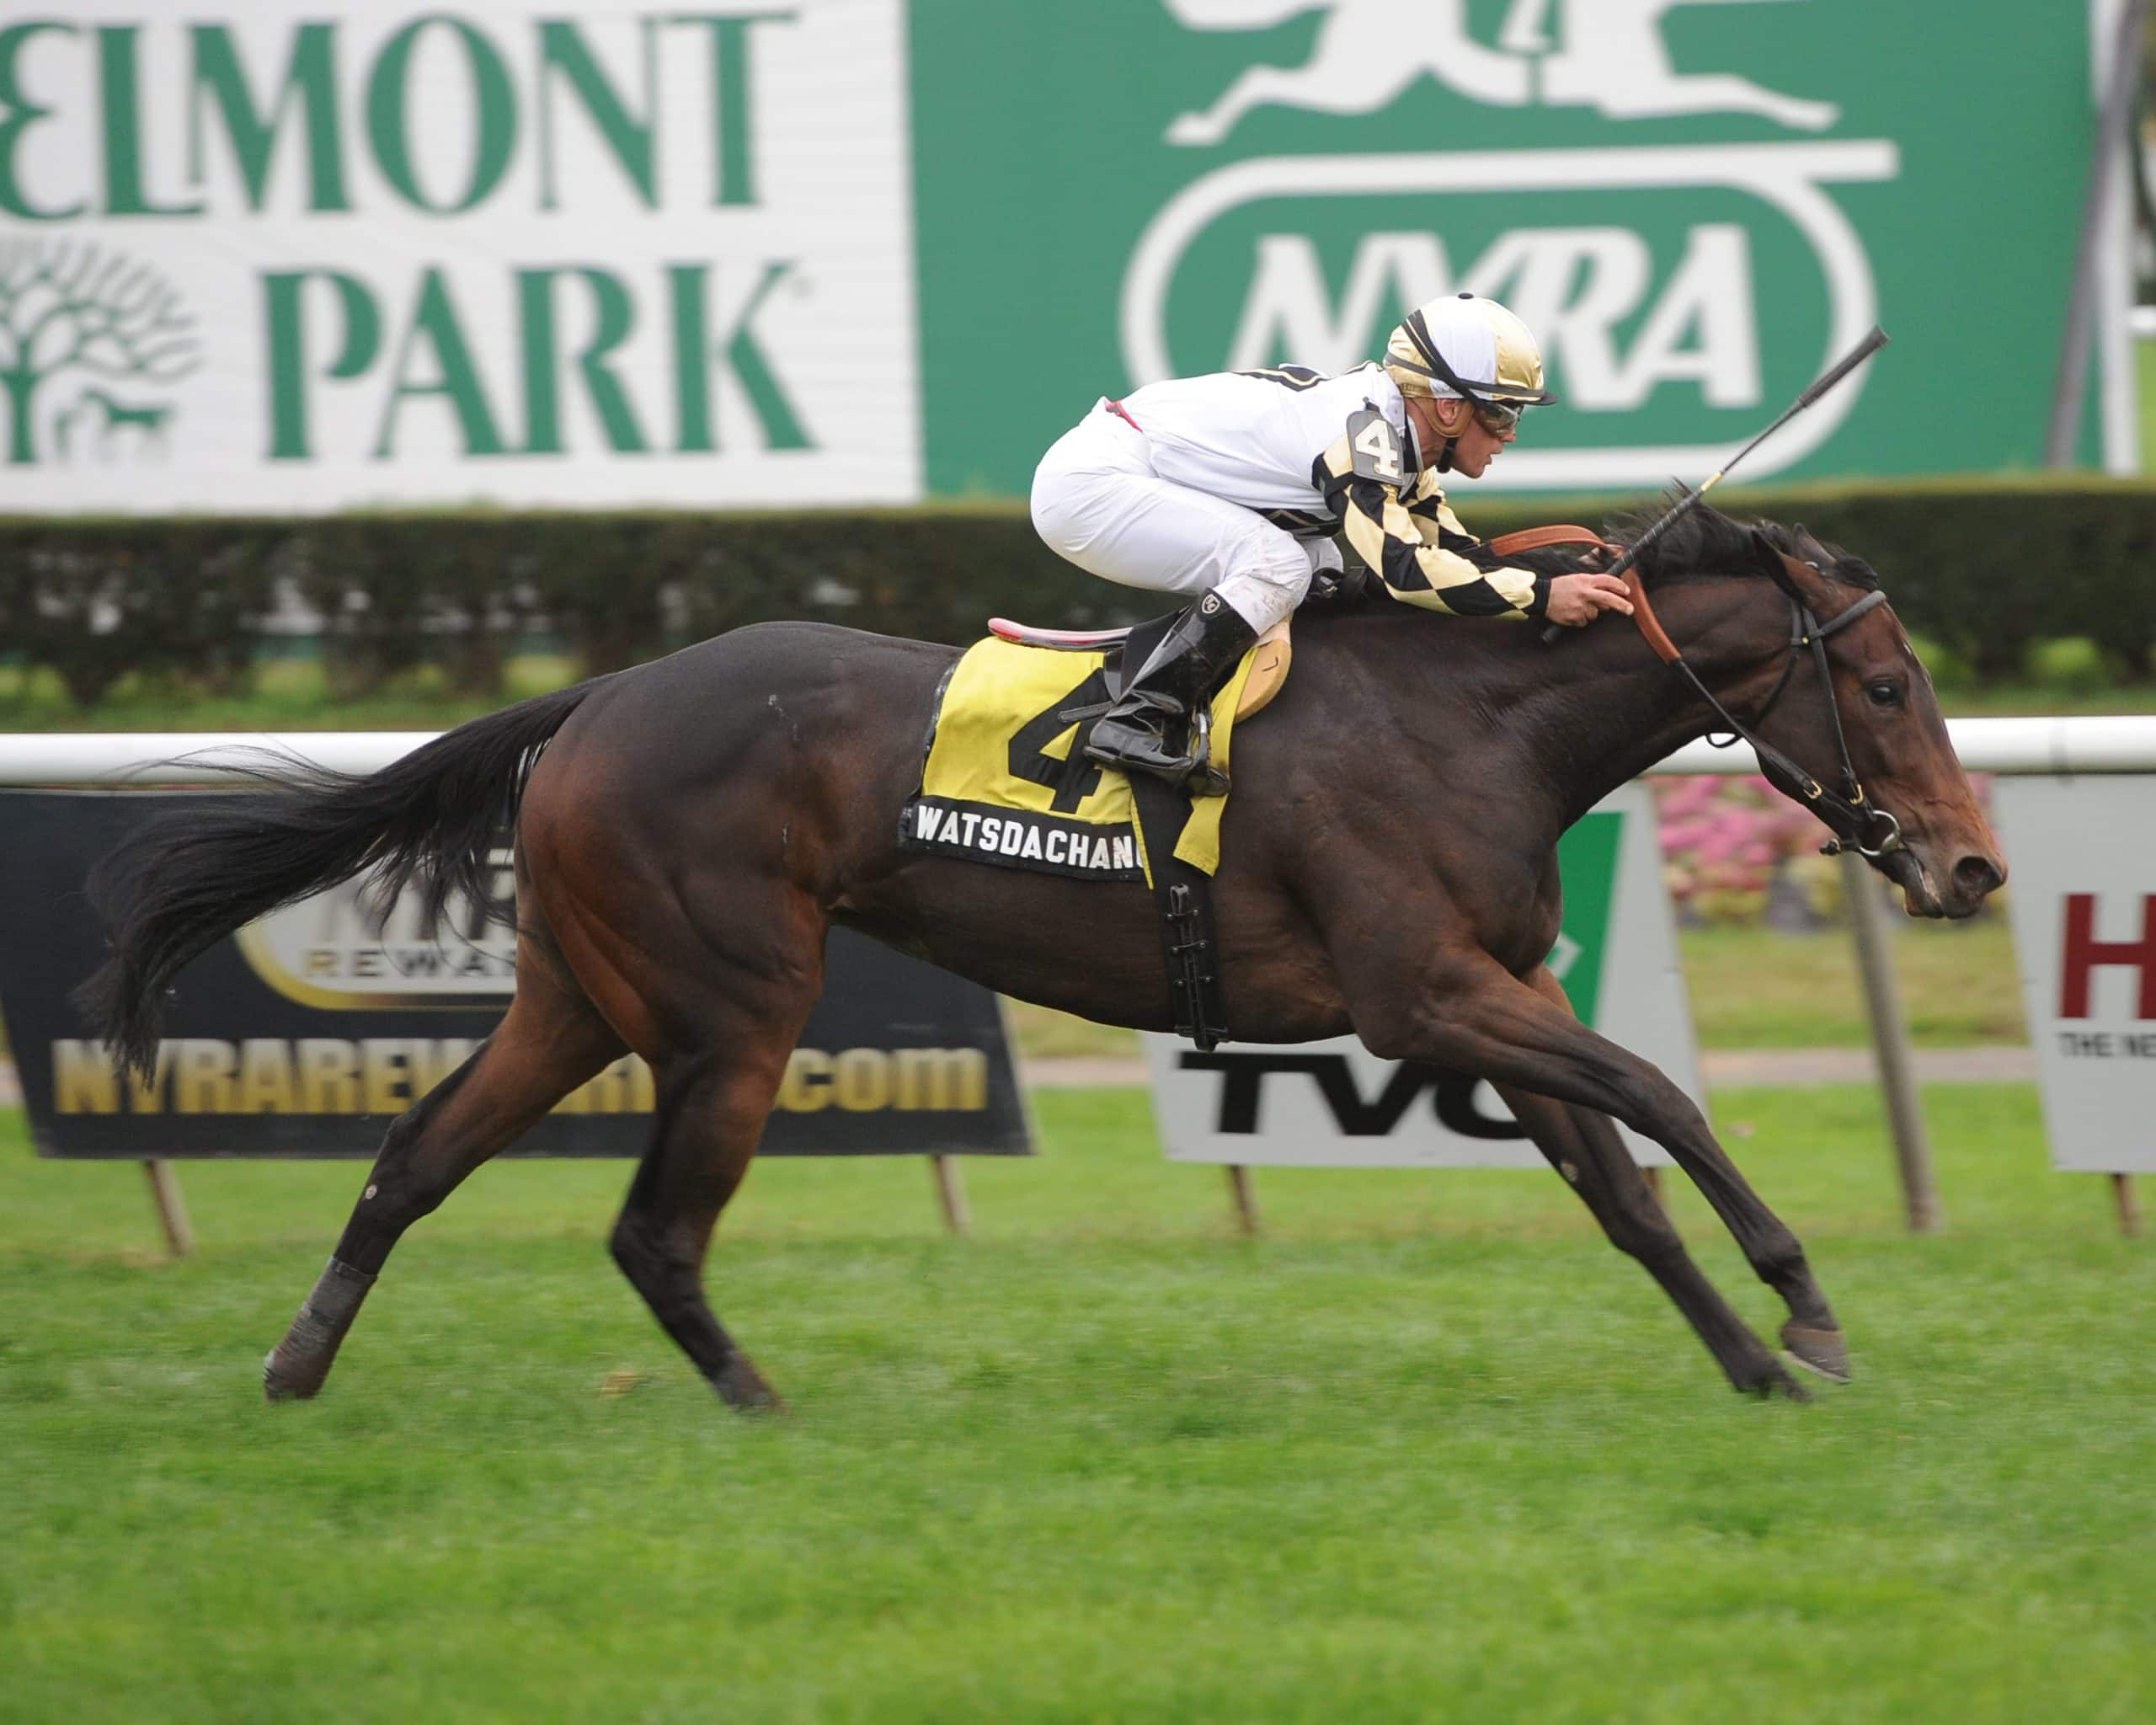 Watsdachances winning the G3 Miss Grillo at Belmont